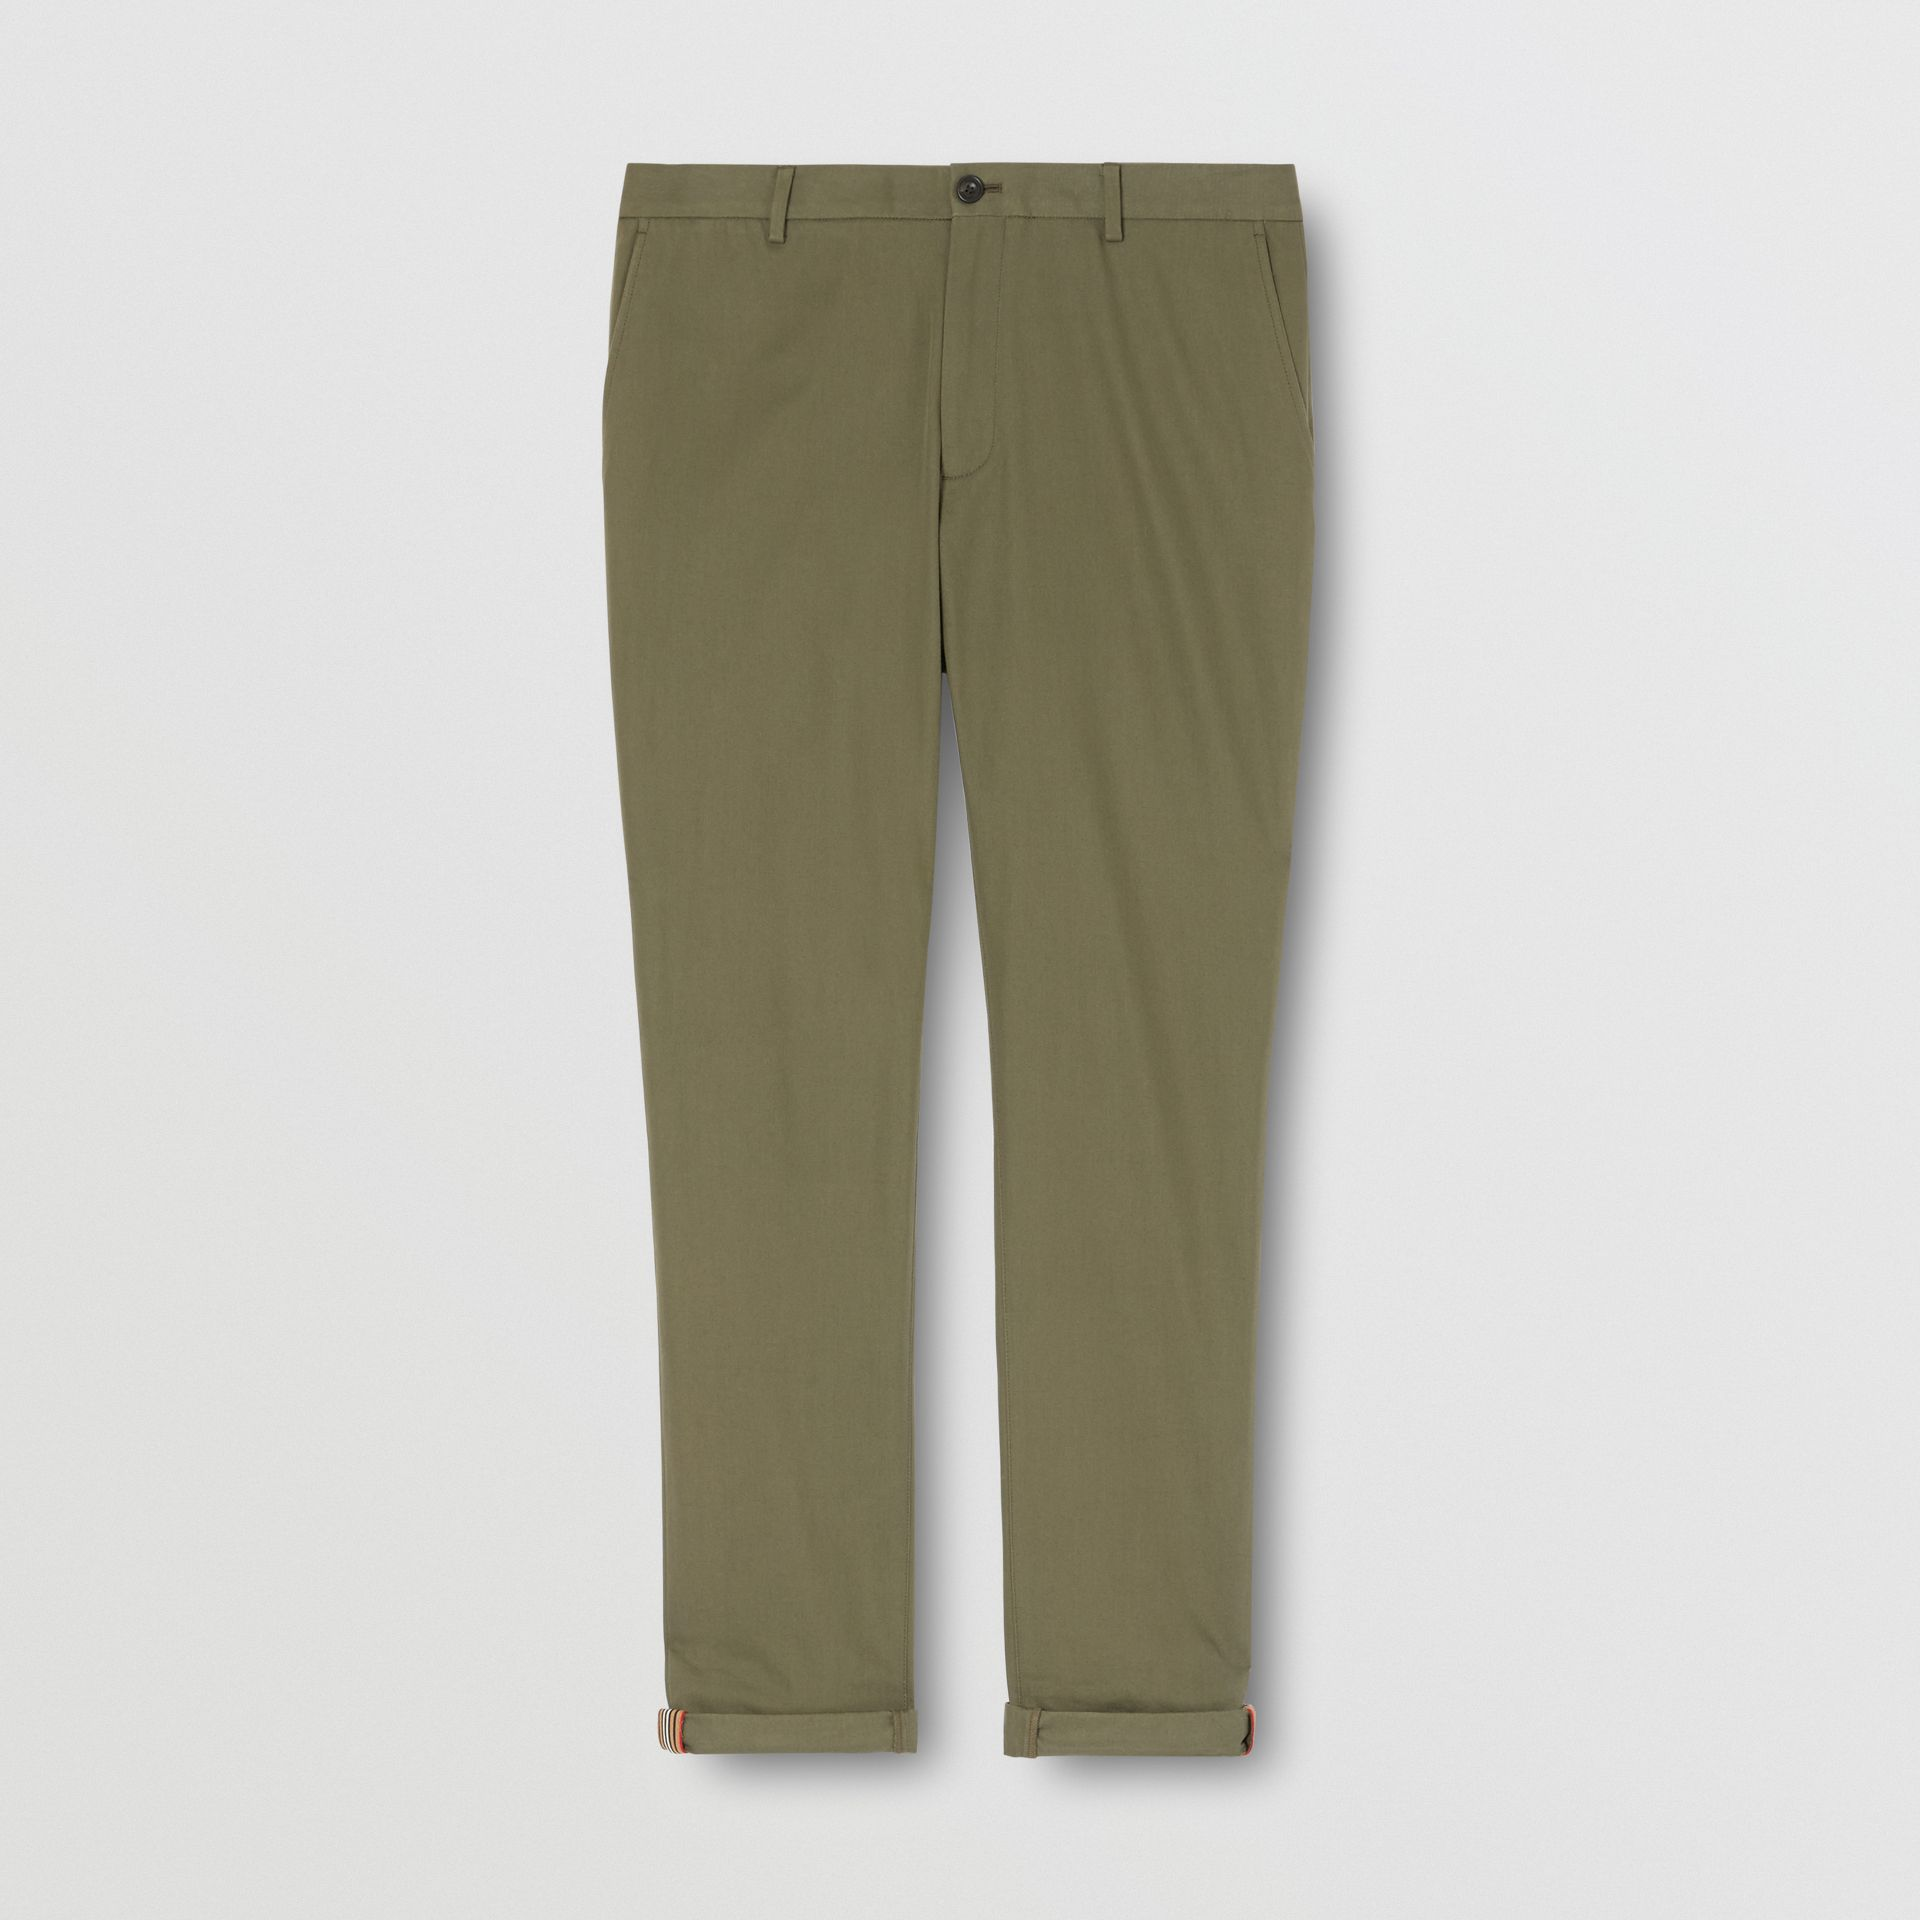 Slim Fit Cotton Chinos in Olive - Men | Burberry - gallery image 3